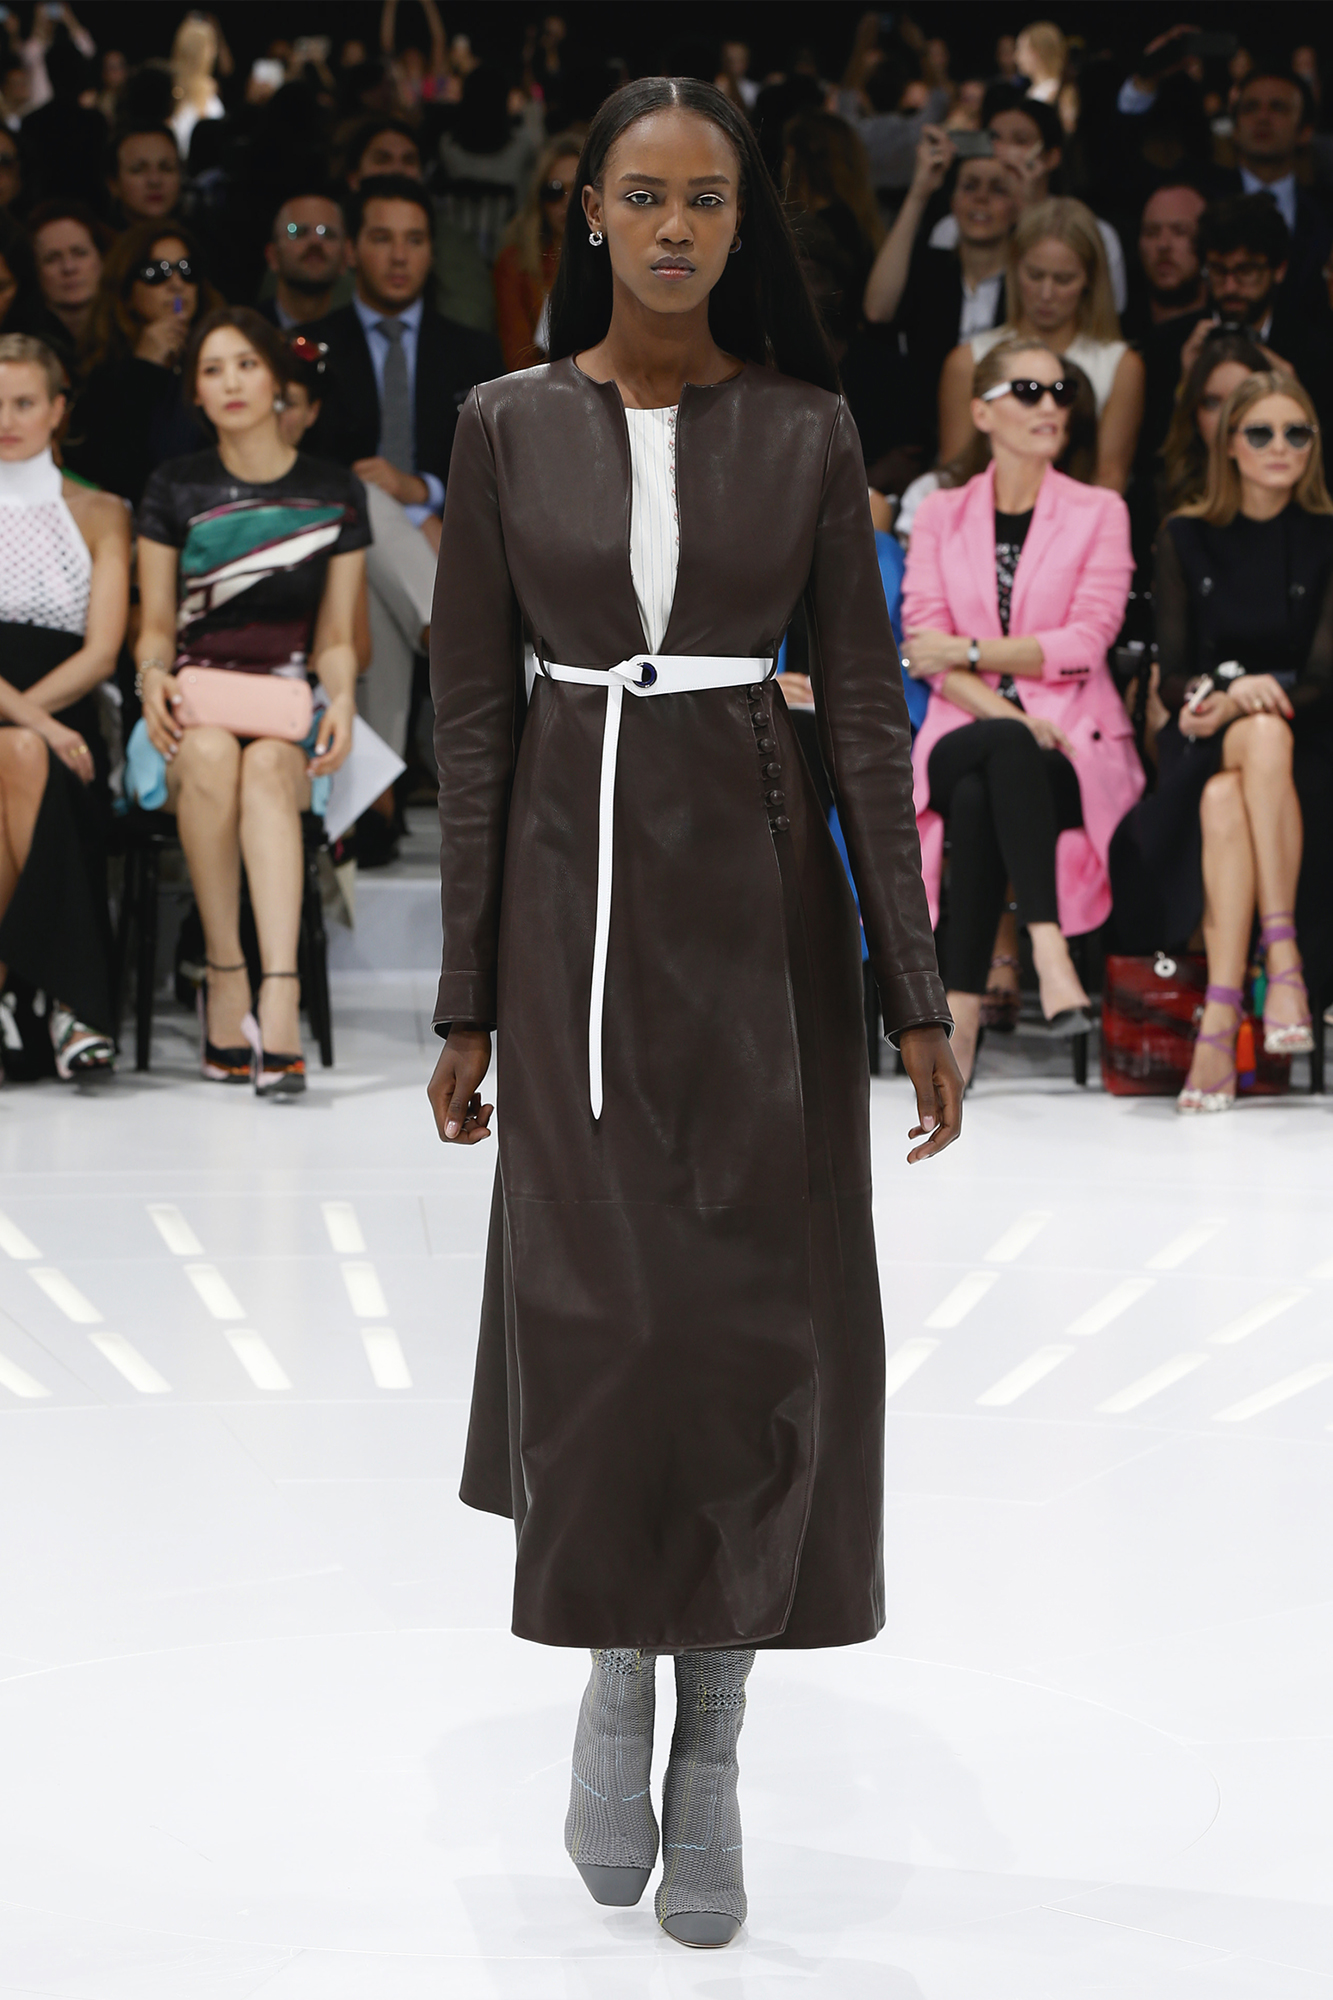 New Western Fashion Christian Dior Ready To Wear Dresses Spring Summer Collection 2015 (15)